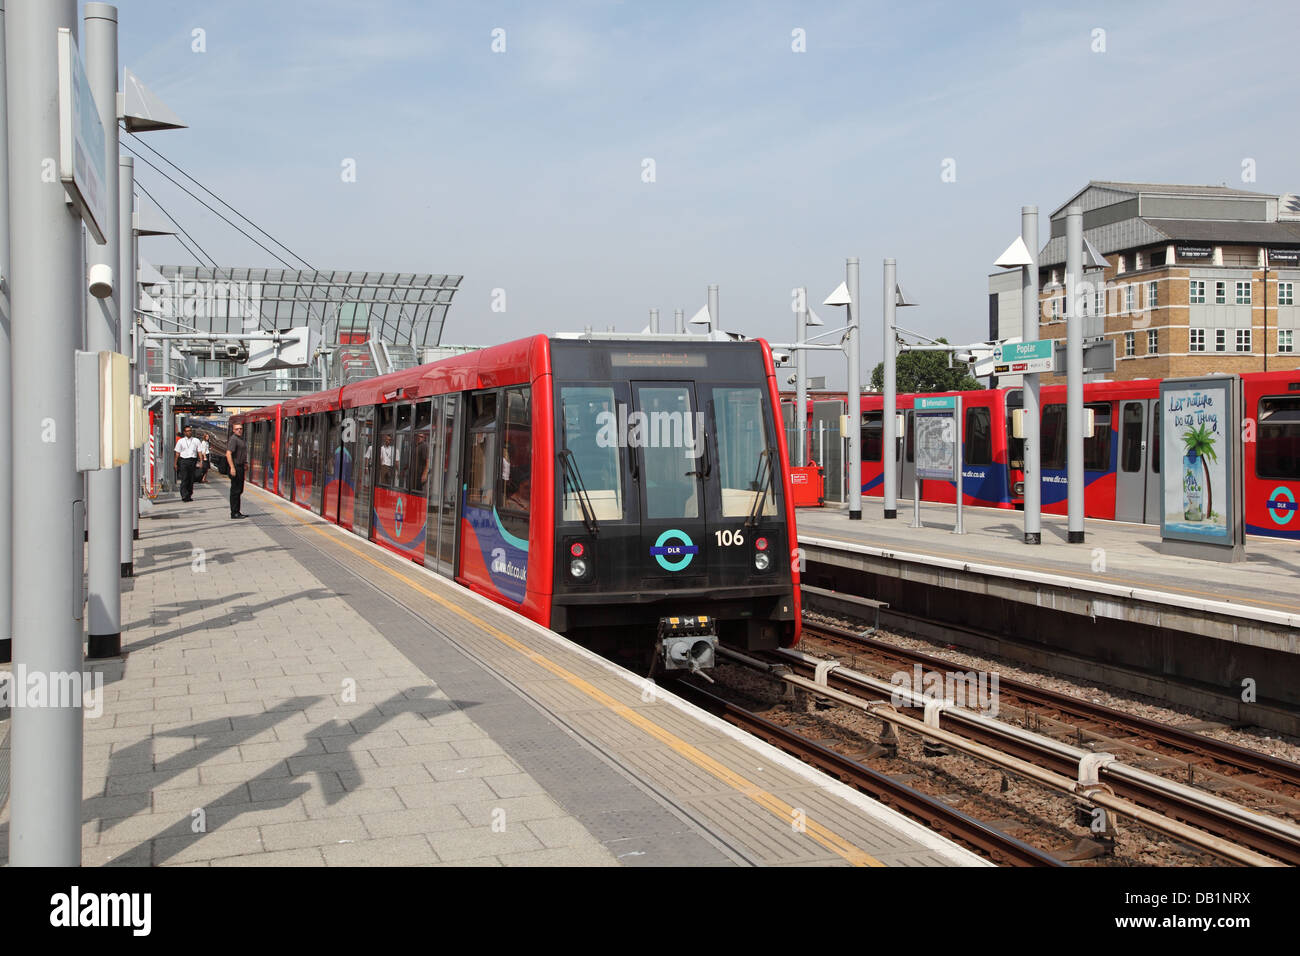 A London Docklands Light Railway train departs from Poplar Station - Stock Image